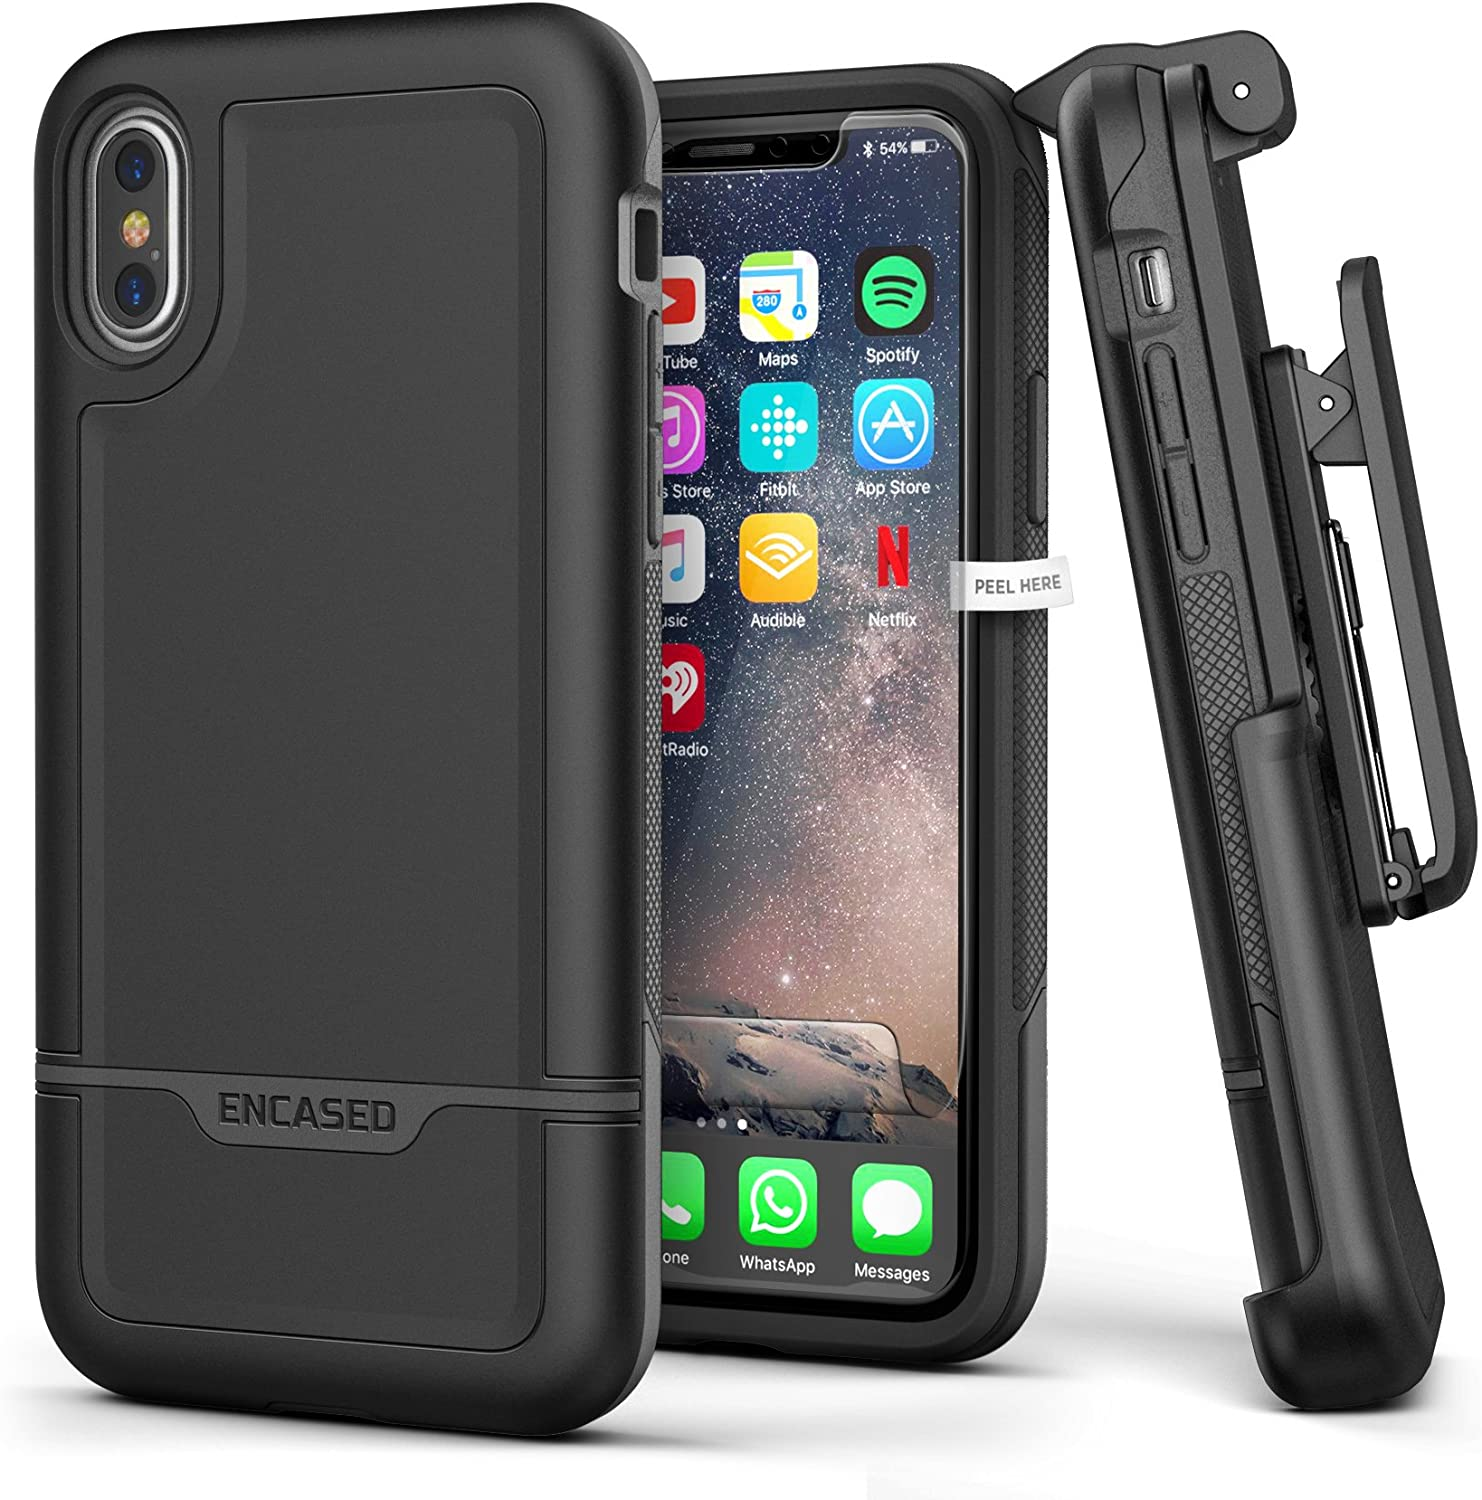 """Heavy Duty iPhone Xs Case Belt Clip Holster - Encased Black Protective Hybrid Cover (Rebel Armor) Designed for Apple iPhone X/iPhone Xs (5.8"""")"""